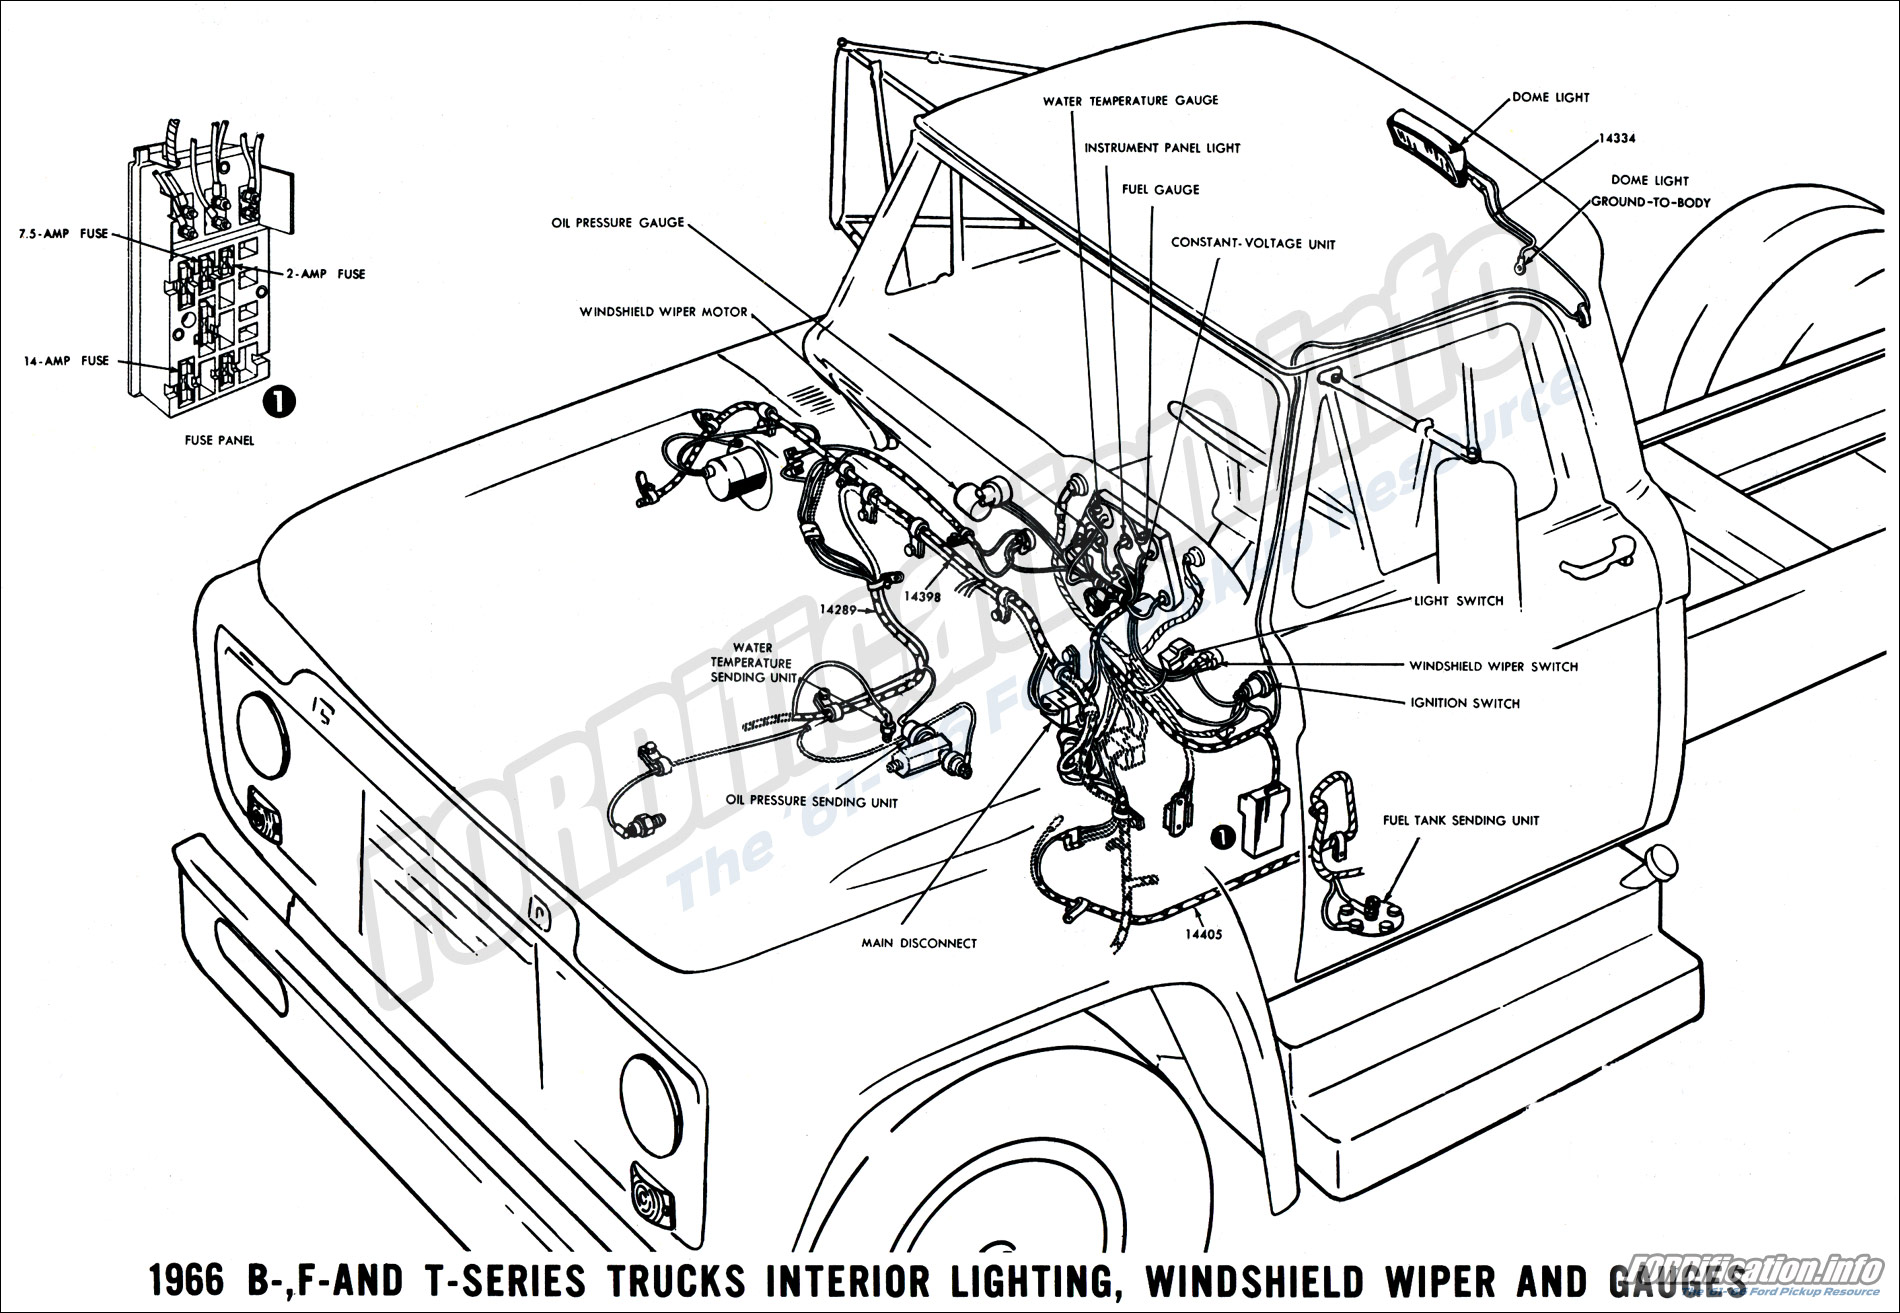 1966 Ford Truck Wiring Diagrams - FORDification.info - The \'61-\'66 ...